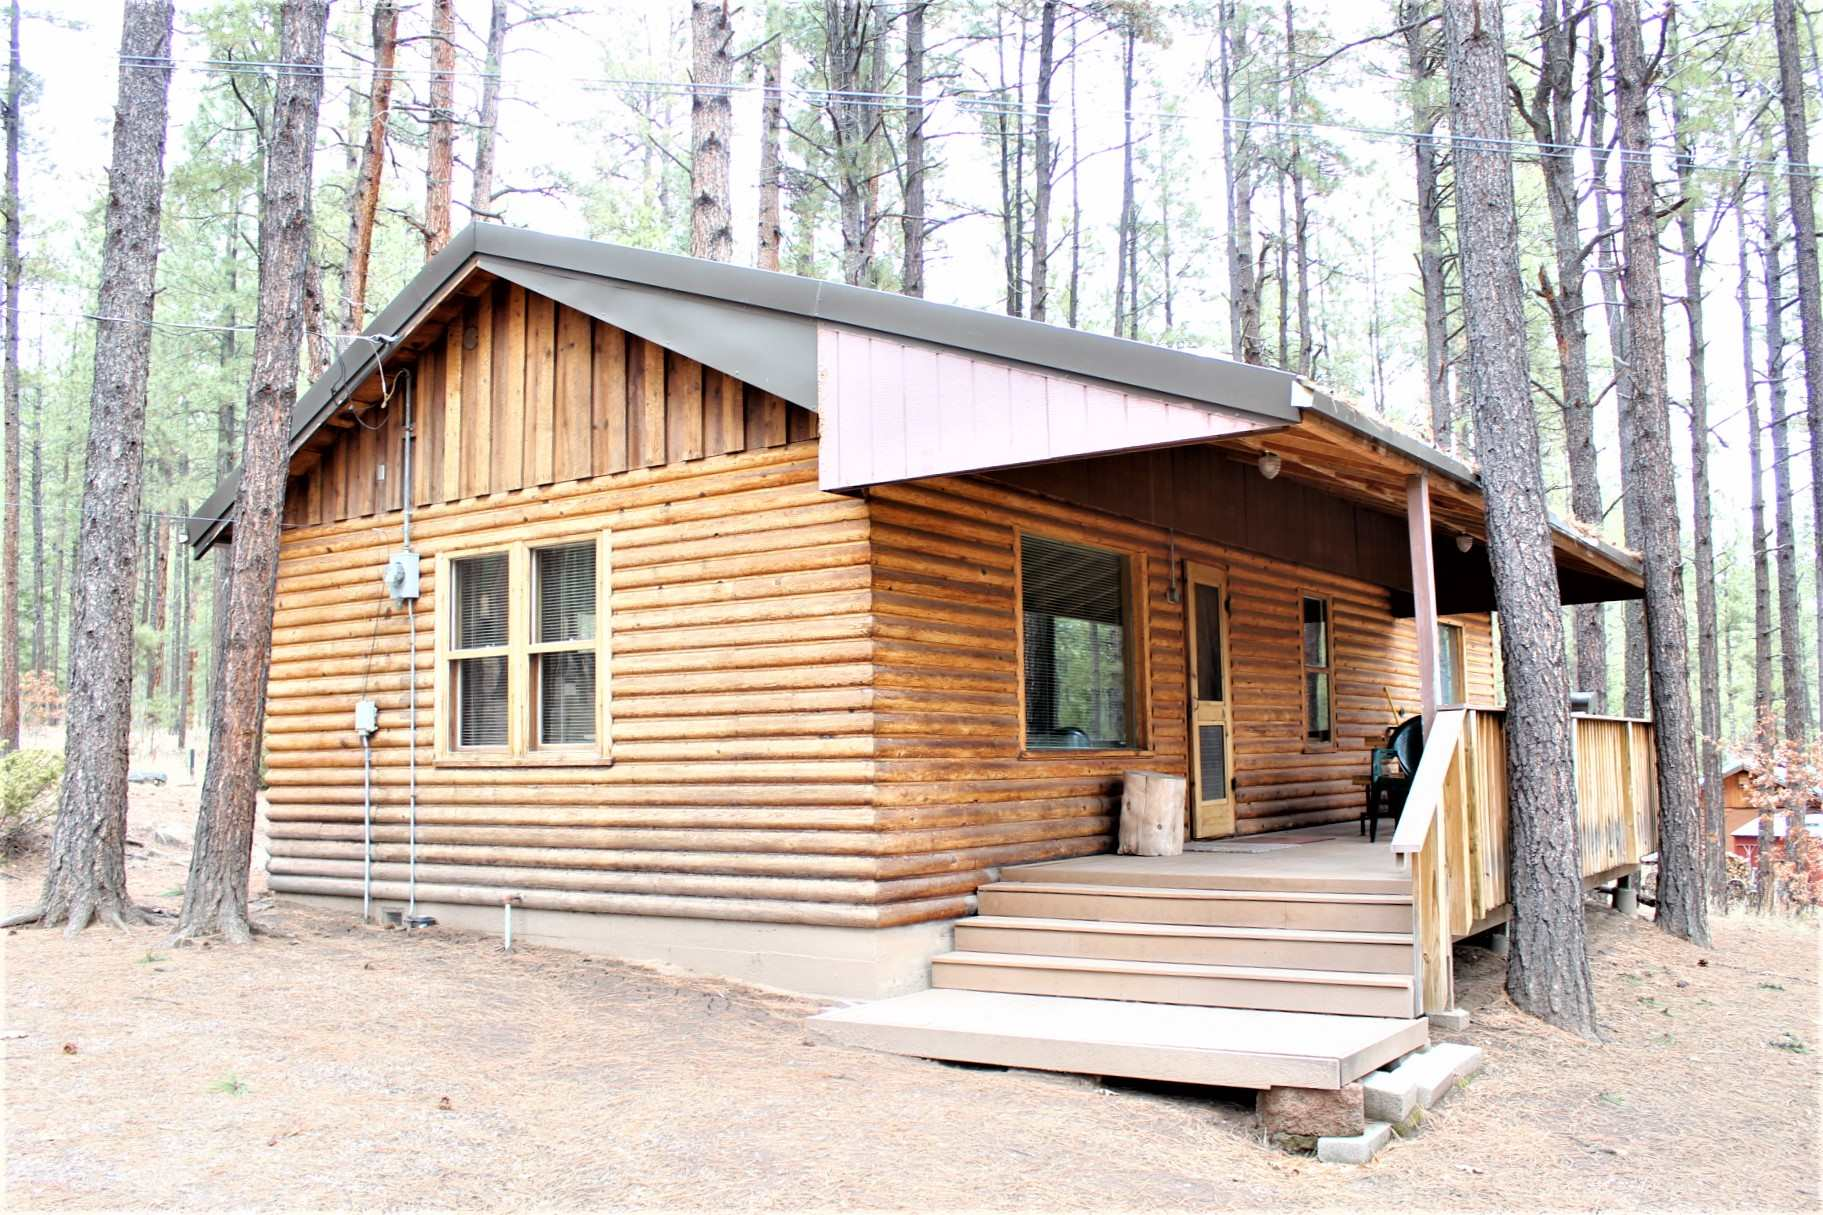 LEAVE THE CRAZINESS OF THE CITY BEHIND...come on up to the peace of the Jemez Mountains and start building memories today! Well maintained original Horseshoe Springs cabin with updates that include forced air heat and TREX deck! Desirable Horseshoe Springs is a delightful area with a well managed HOA to keep things well maintained. Community Water System so no well to worry with. HOA maintains roads and plows the snow in winter. This one won't last long so make a plan to come up soon!! Bring a picnic and make a day of it!! To maintain the friendly and neighborly charm and peace and quiet, HOA Covenants do not allow Airbnb or other short term rentals.